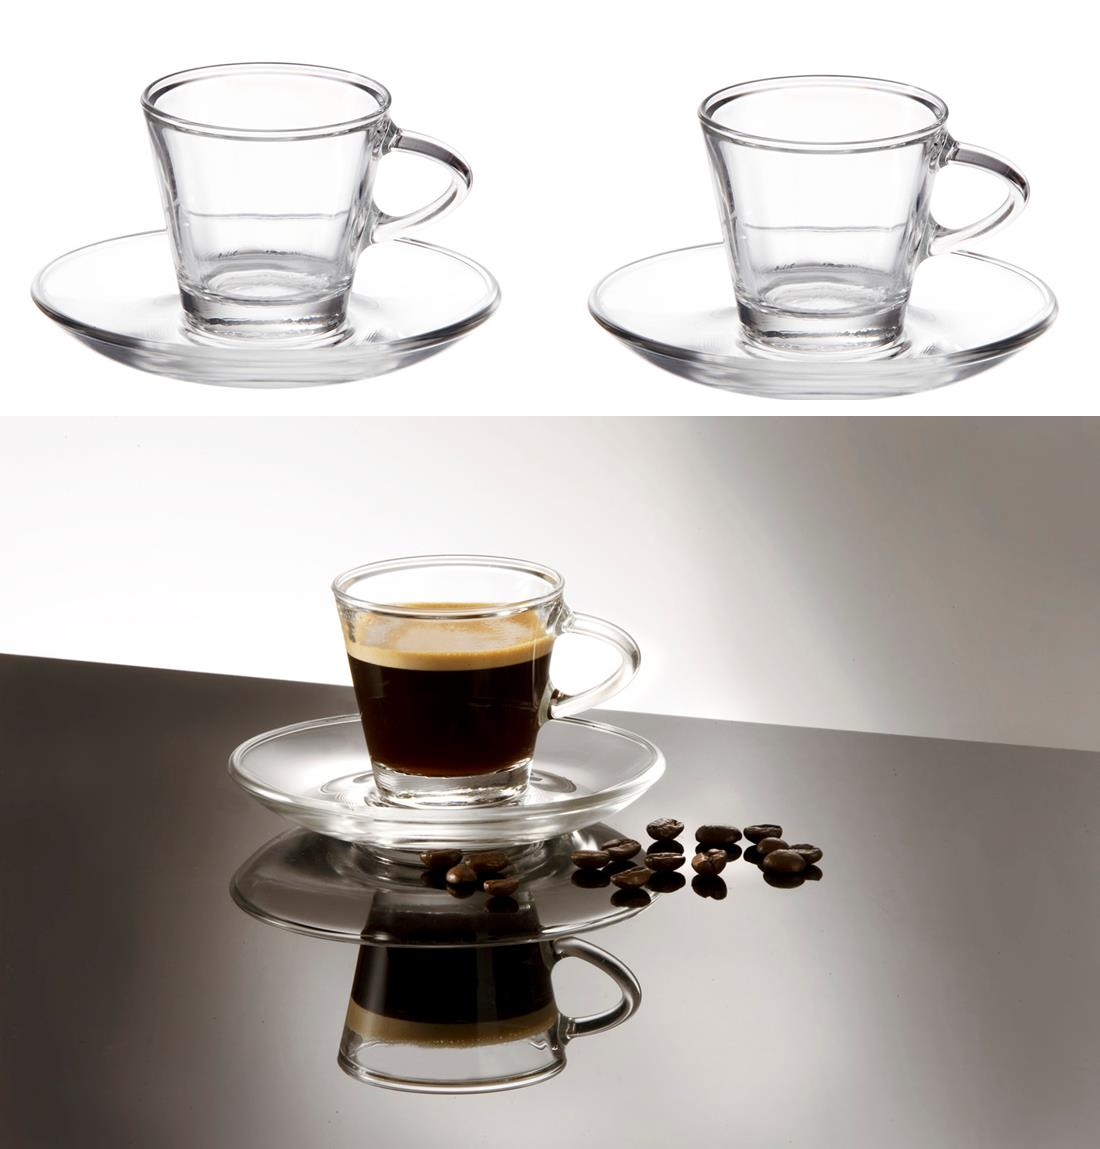 Glass espresso coffee cups uk - Sentinel 2 Clear Small Glass Espresso Coffee Cups Saucers 80ml Set Of 2 Gift Boxed